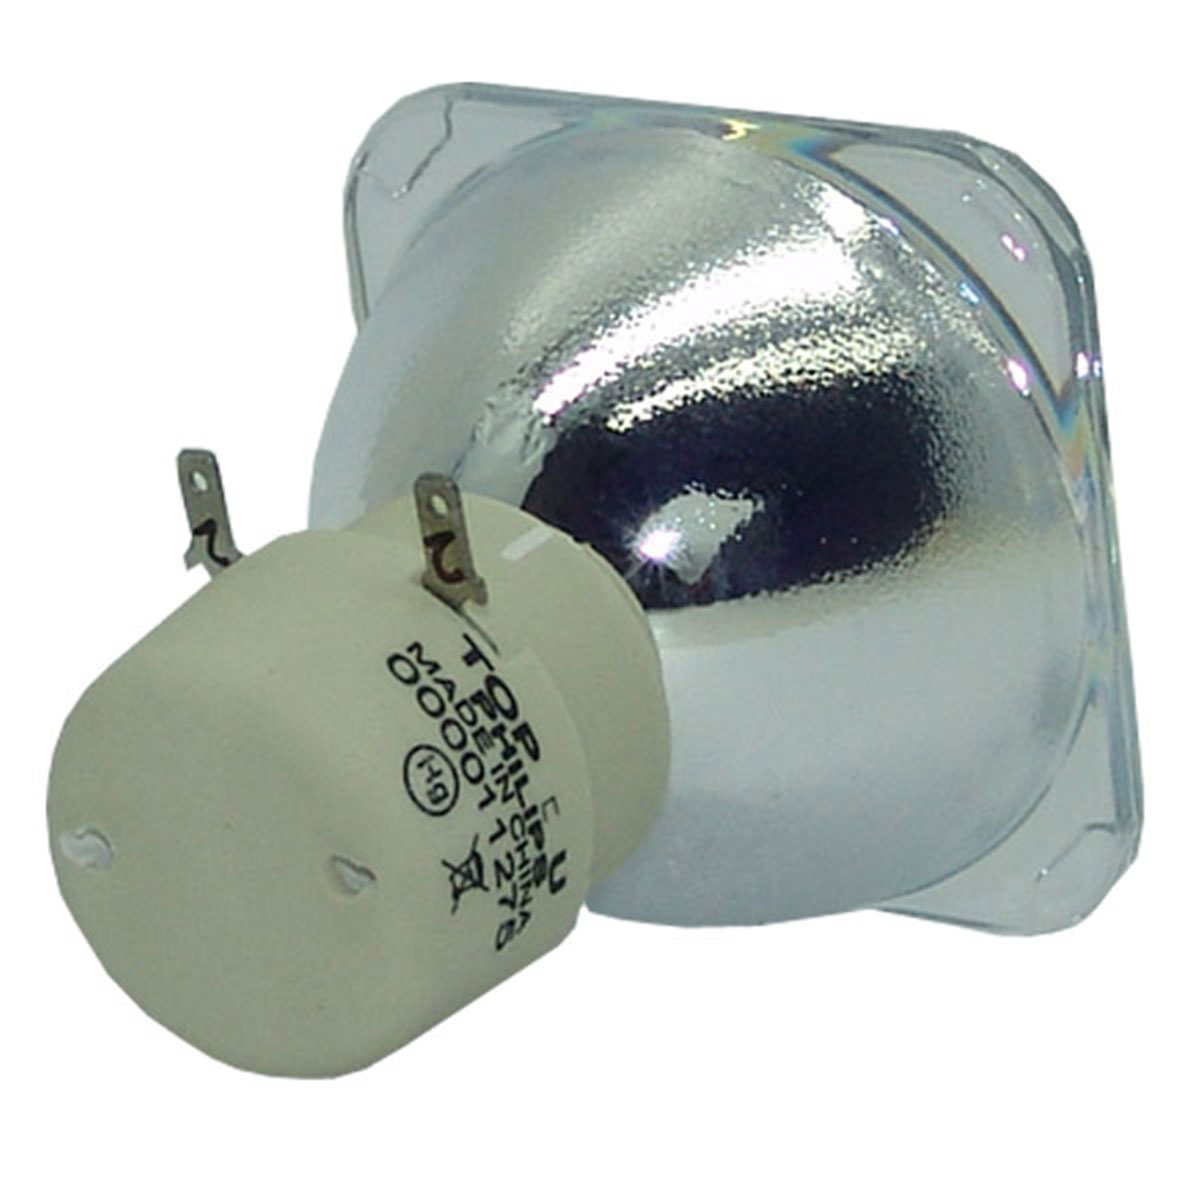 Original Philips Projector Lamp Replacement for BenQ MP514 (Bulb Only) - image 1 de 5